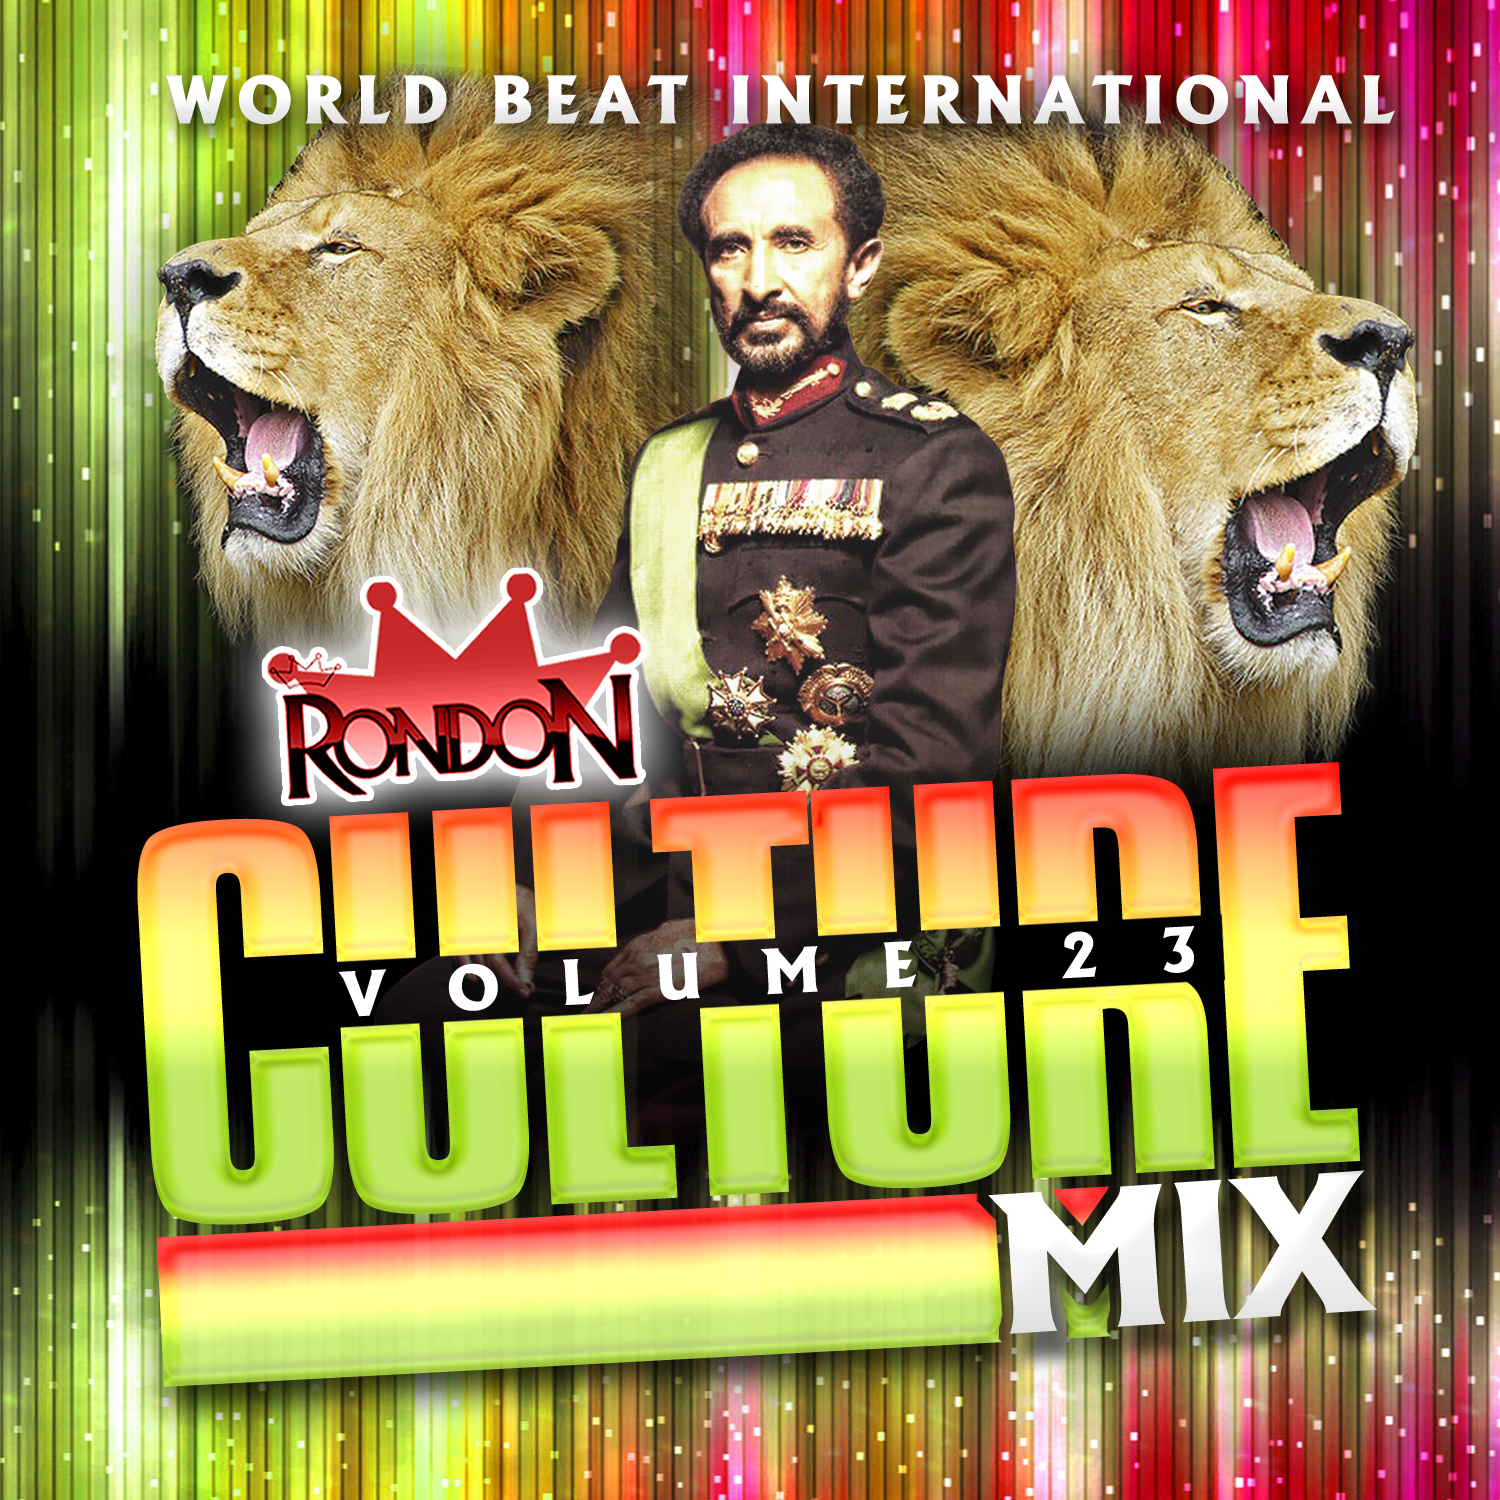 CULTURE MIX REGGAE VOL. 23 CD